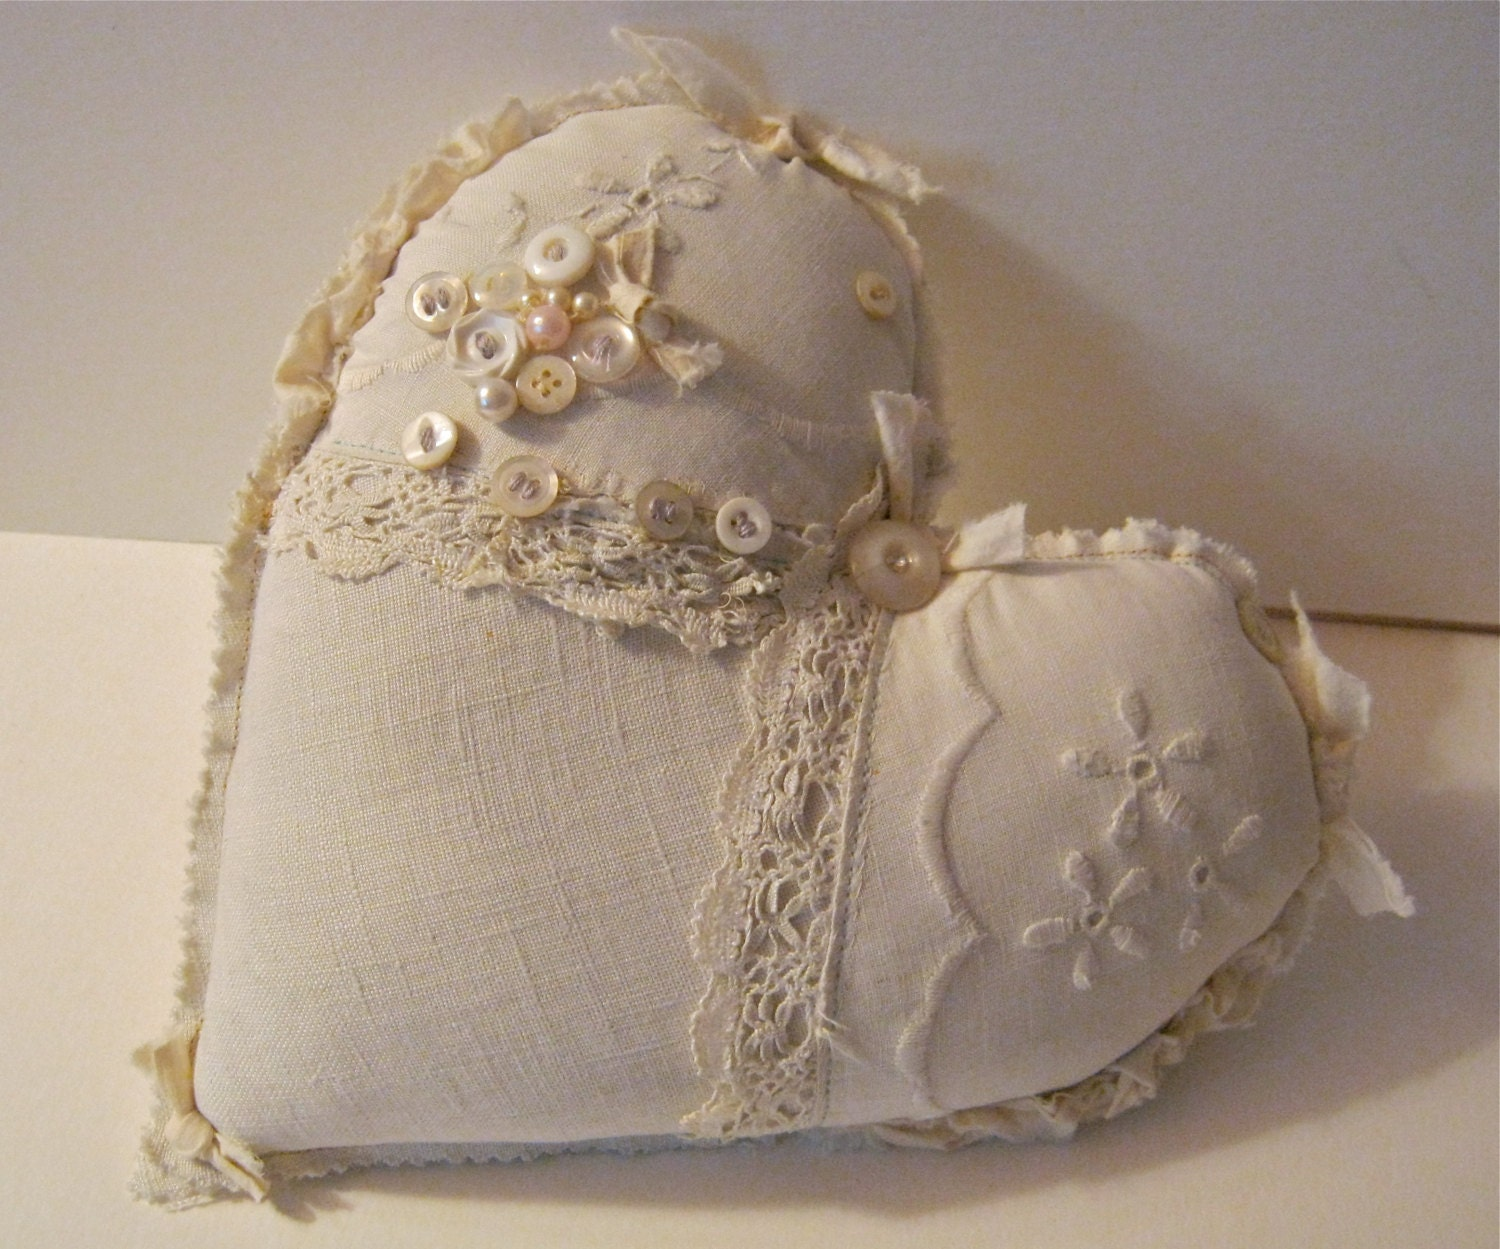 Shabby Chic Heart Pillows : Fabric ooak heart pillow pretty shabby chic pillow